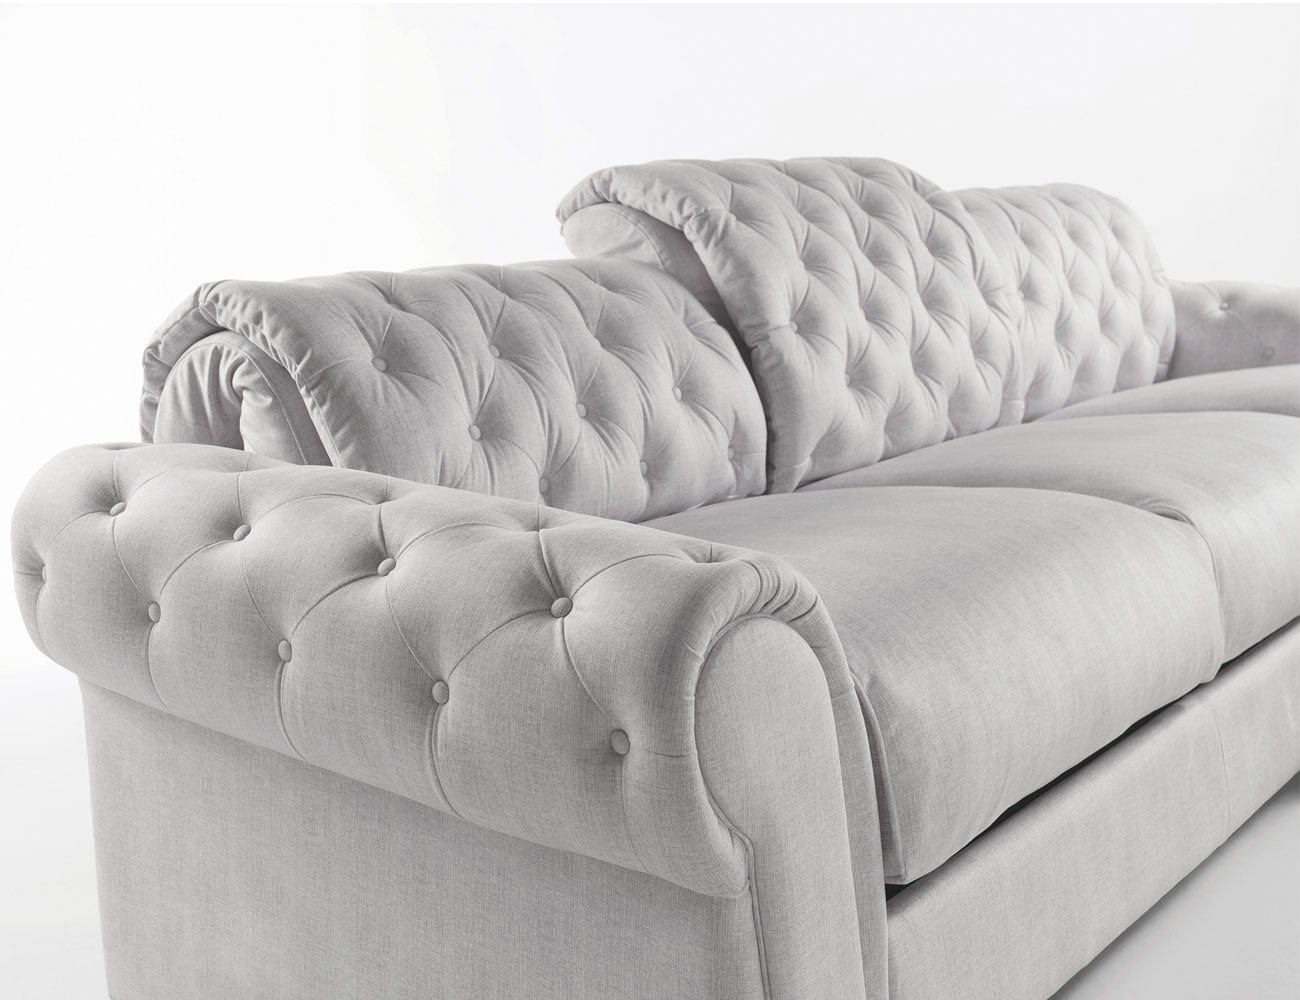 Sofa chaiselongue gran lujo decorativo capitone blanco tela 152